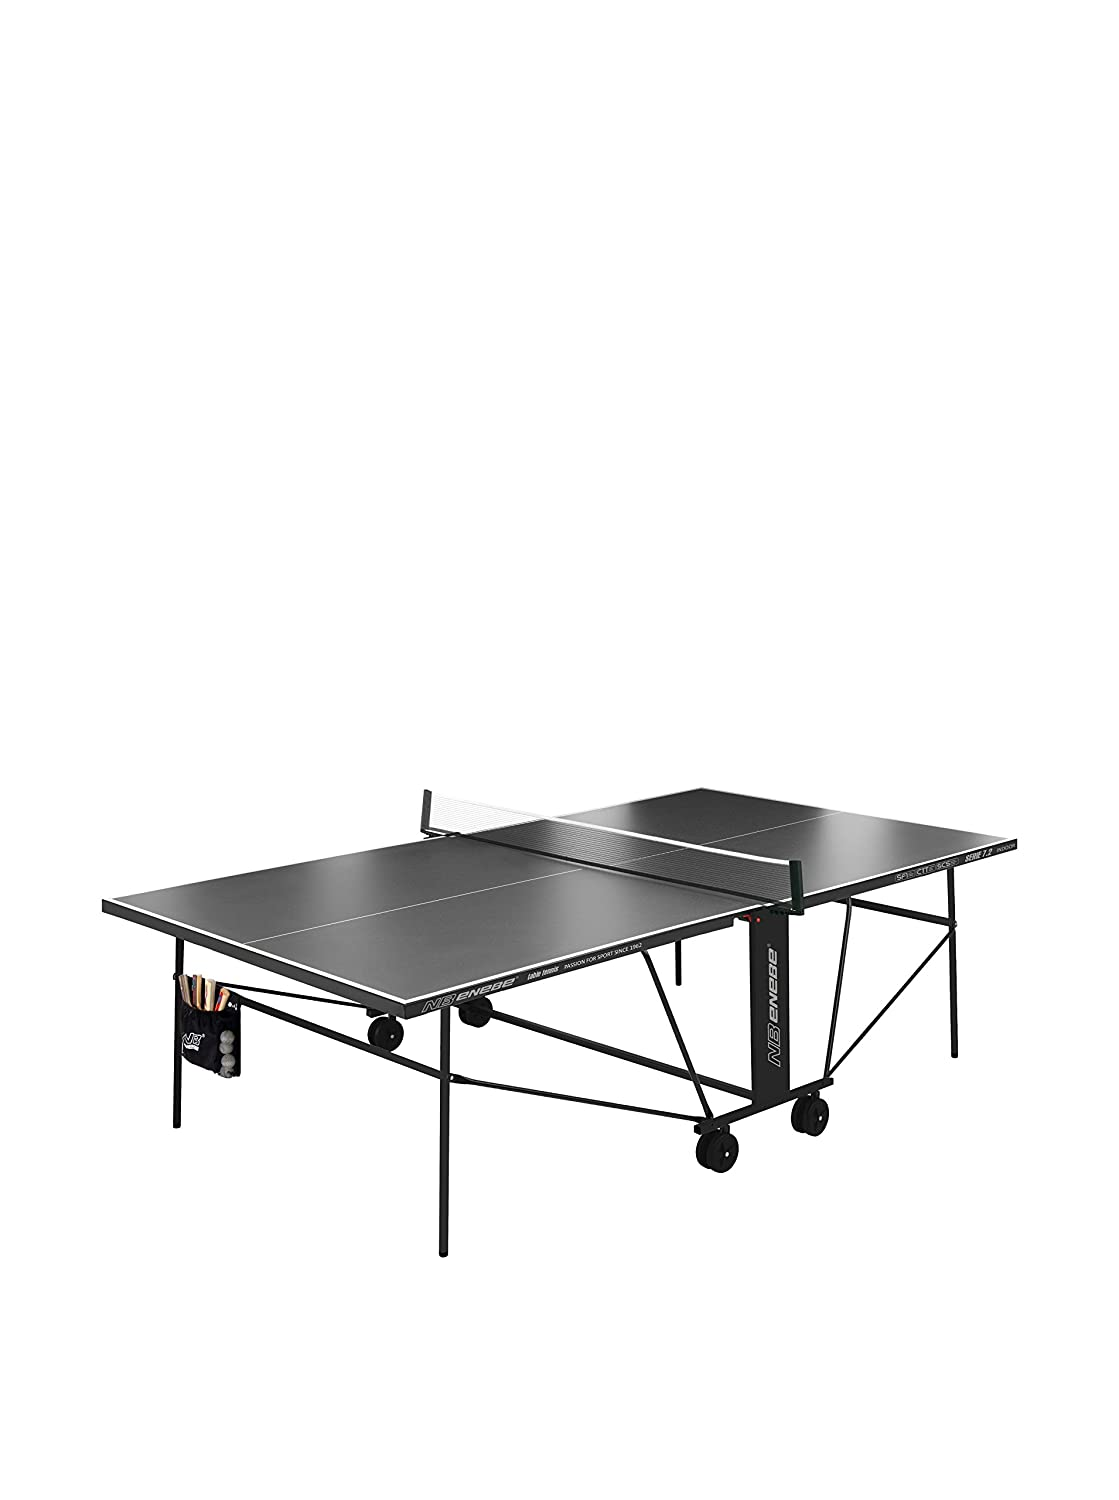 Enebe Mesa Ping Pong Serie 7.2 Limited Interior Negro: Amazon.es ...